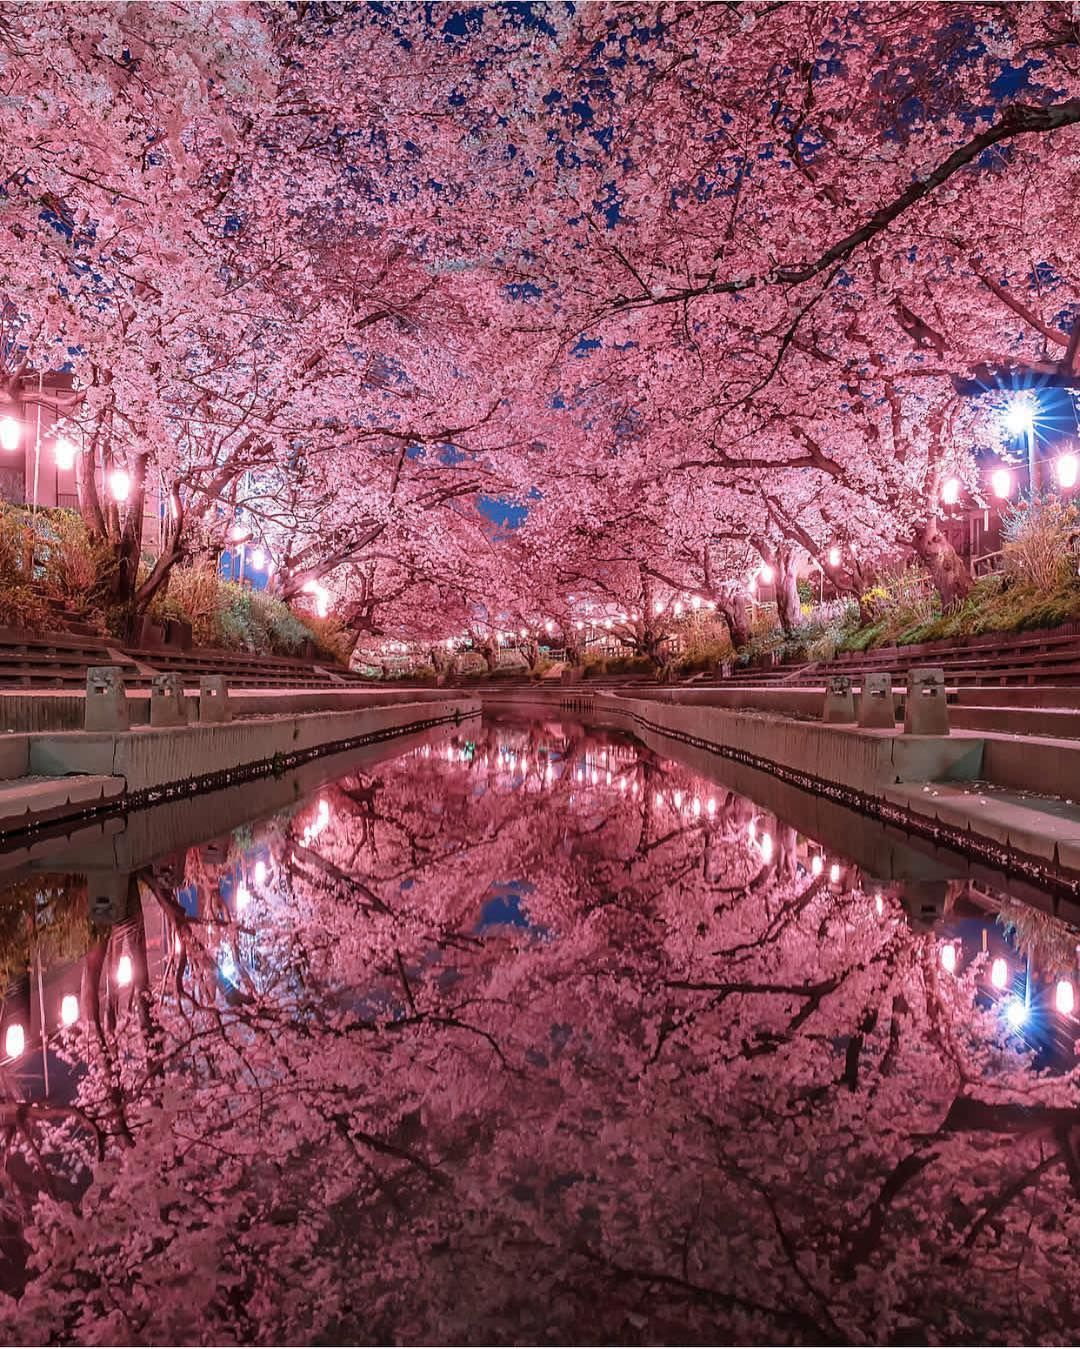 Night Shots Of Cherry Blossoms In Japan Pictures By Number Shiiix Wonderful Places F Cherry Blossom Japan Japan Photography Nature Photography